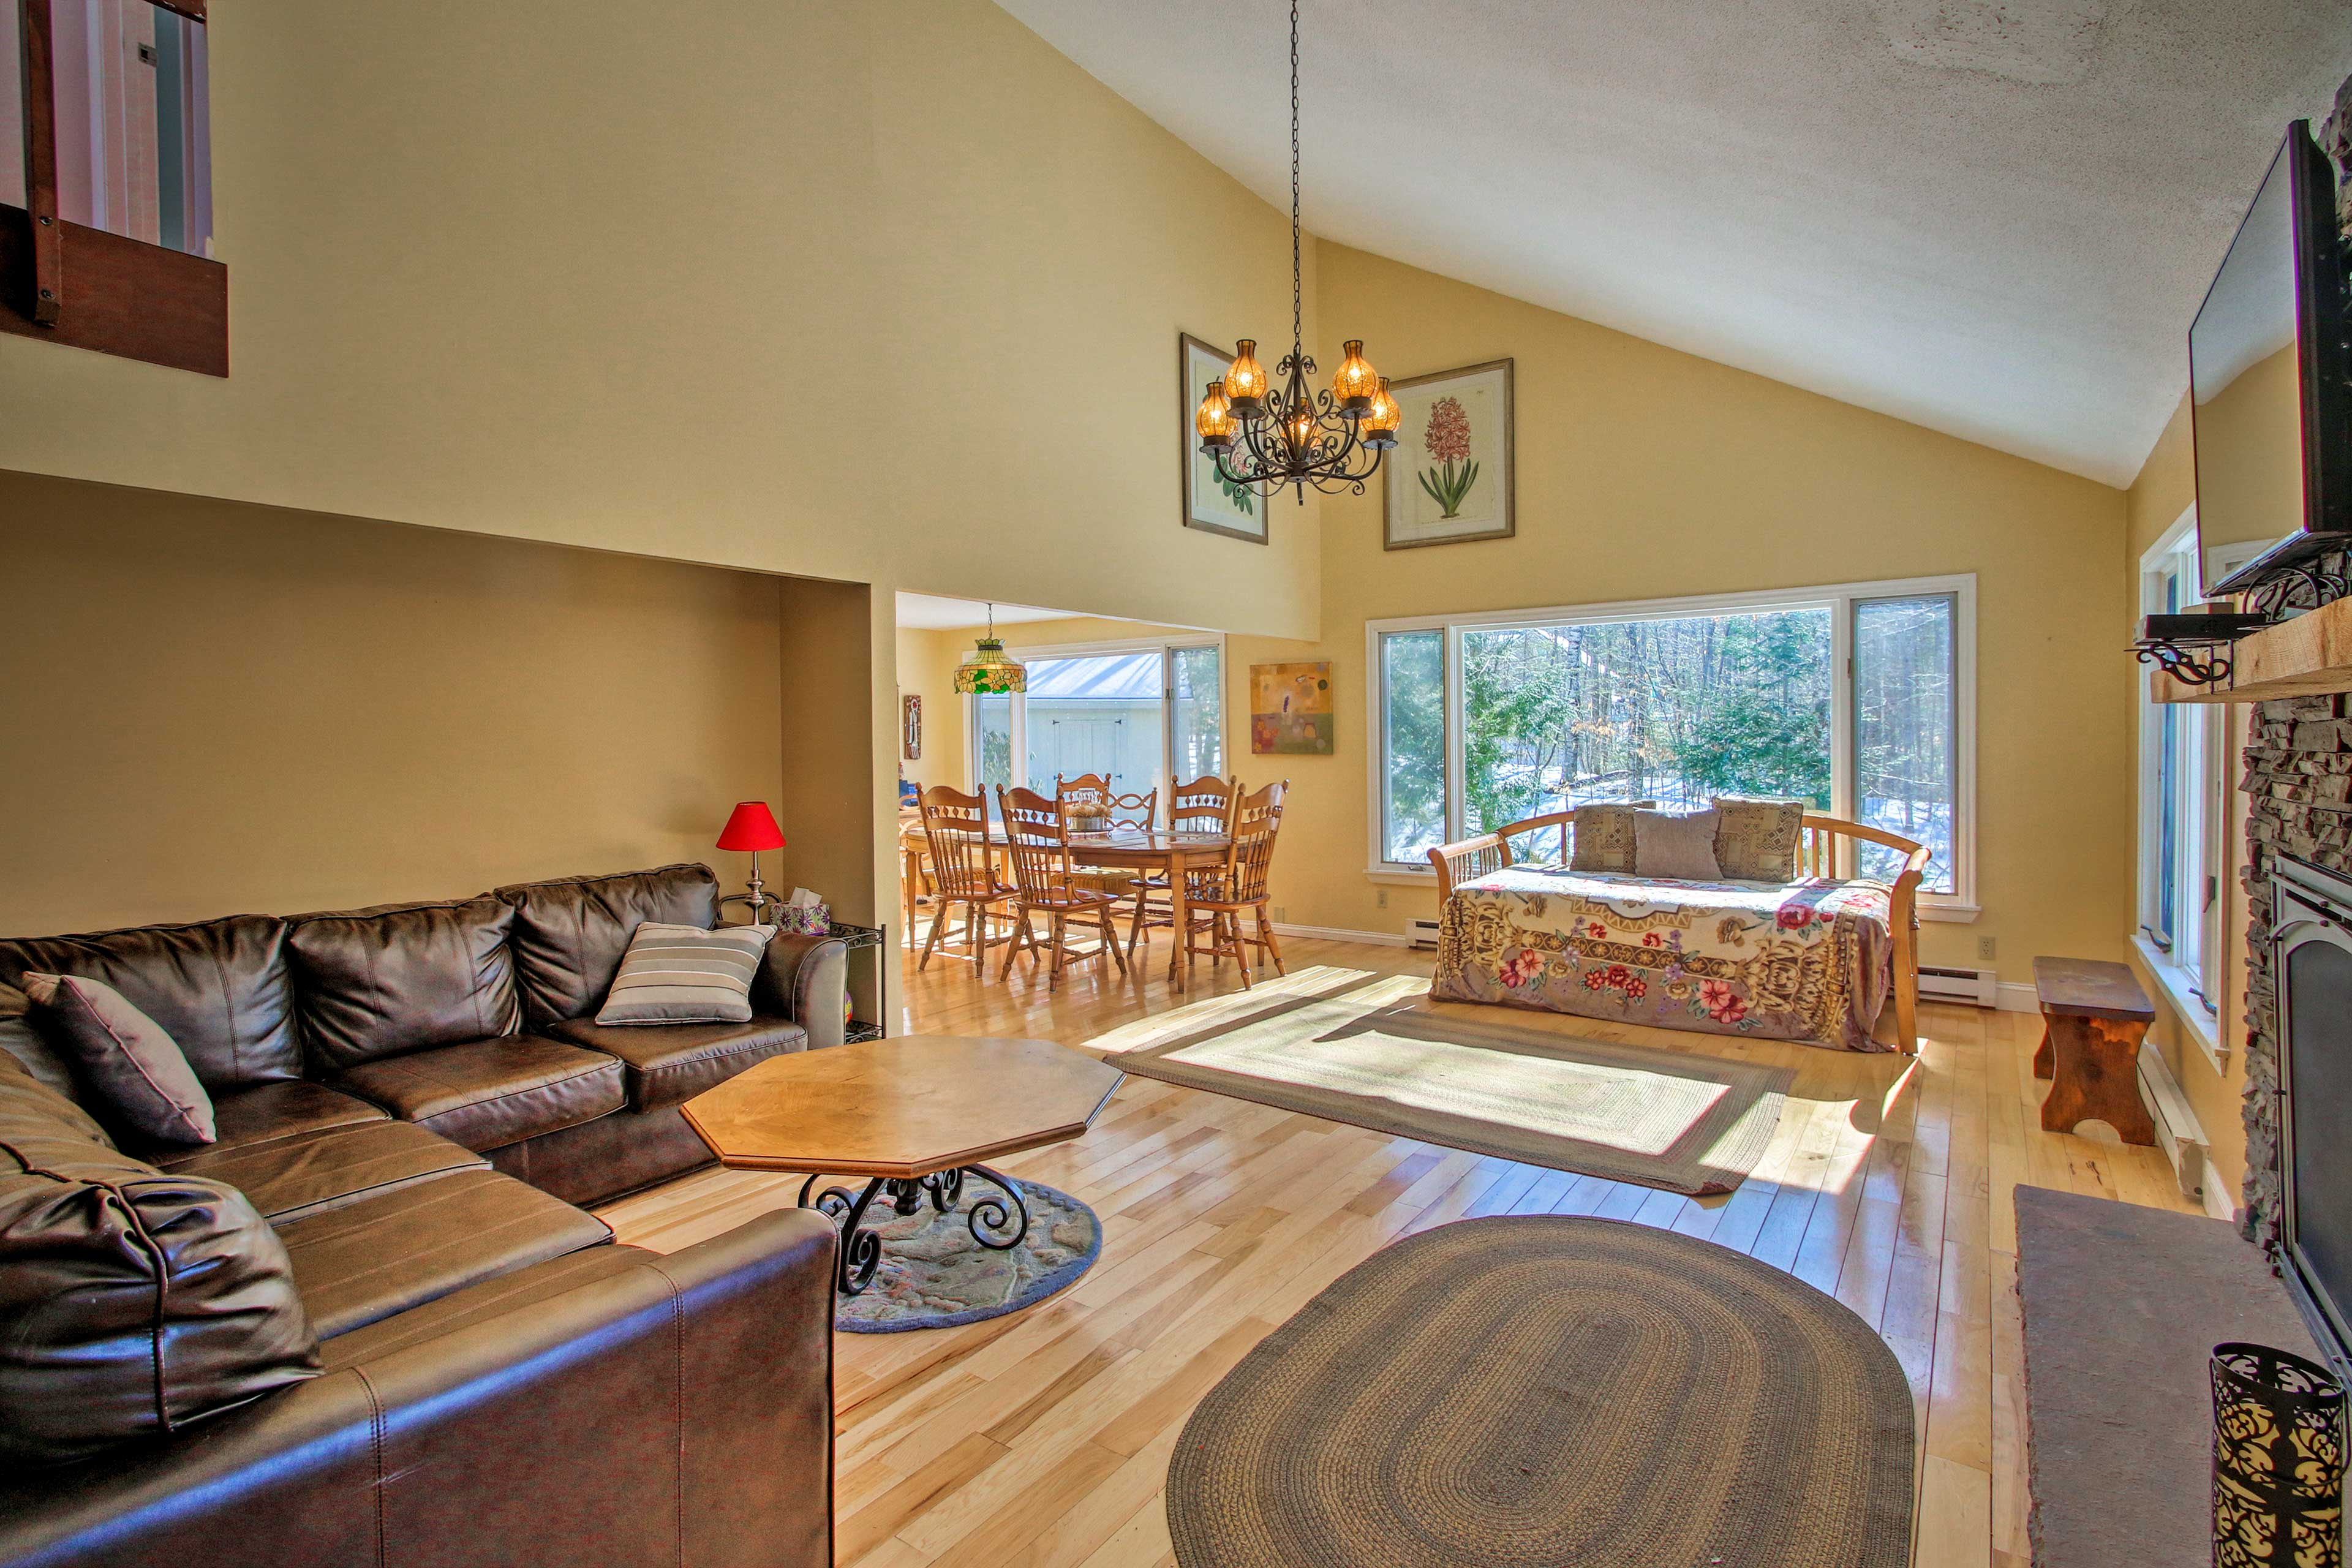 Make yourself at home inside this Campton vacation rental home!